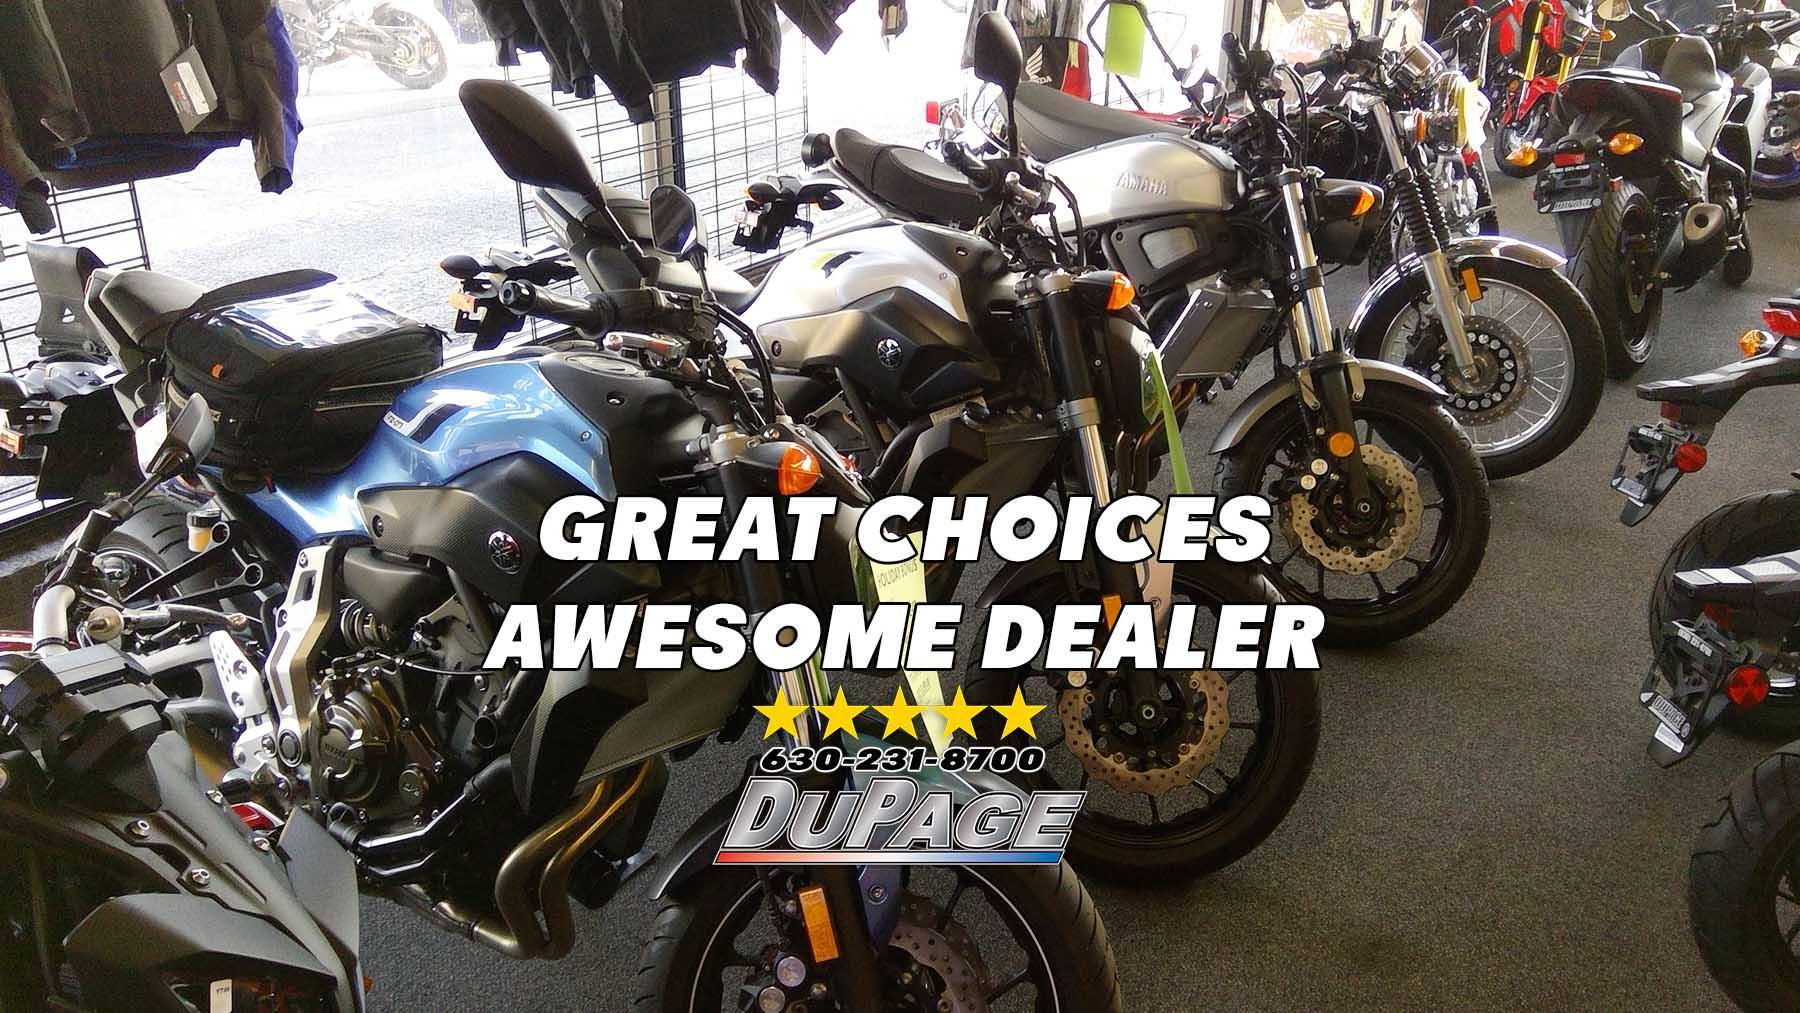 DUPAGE HONDA YAMAHA Coupons near me in West Chicago | 8coupons